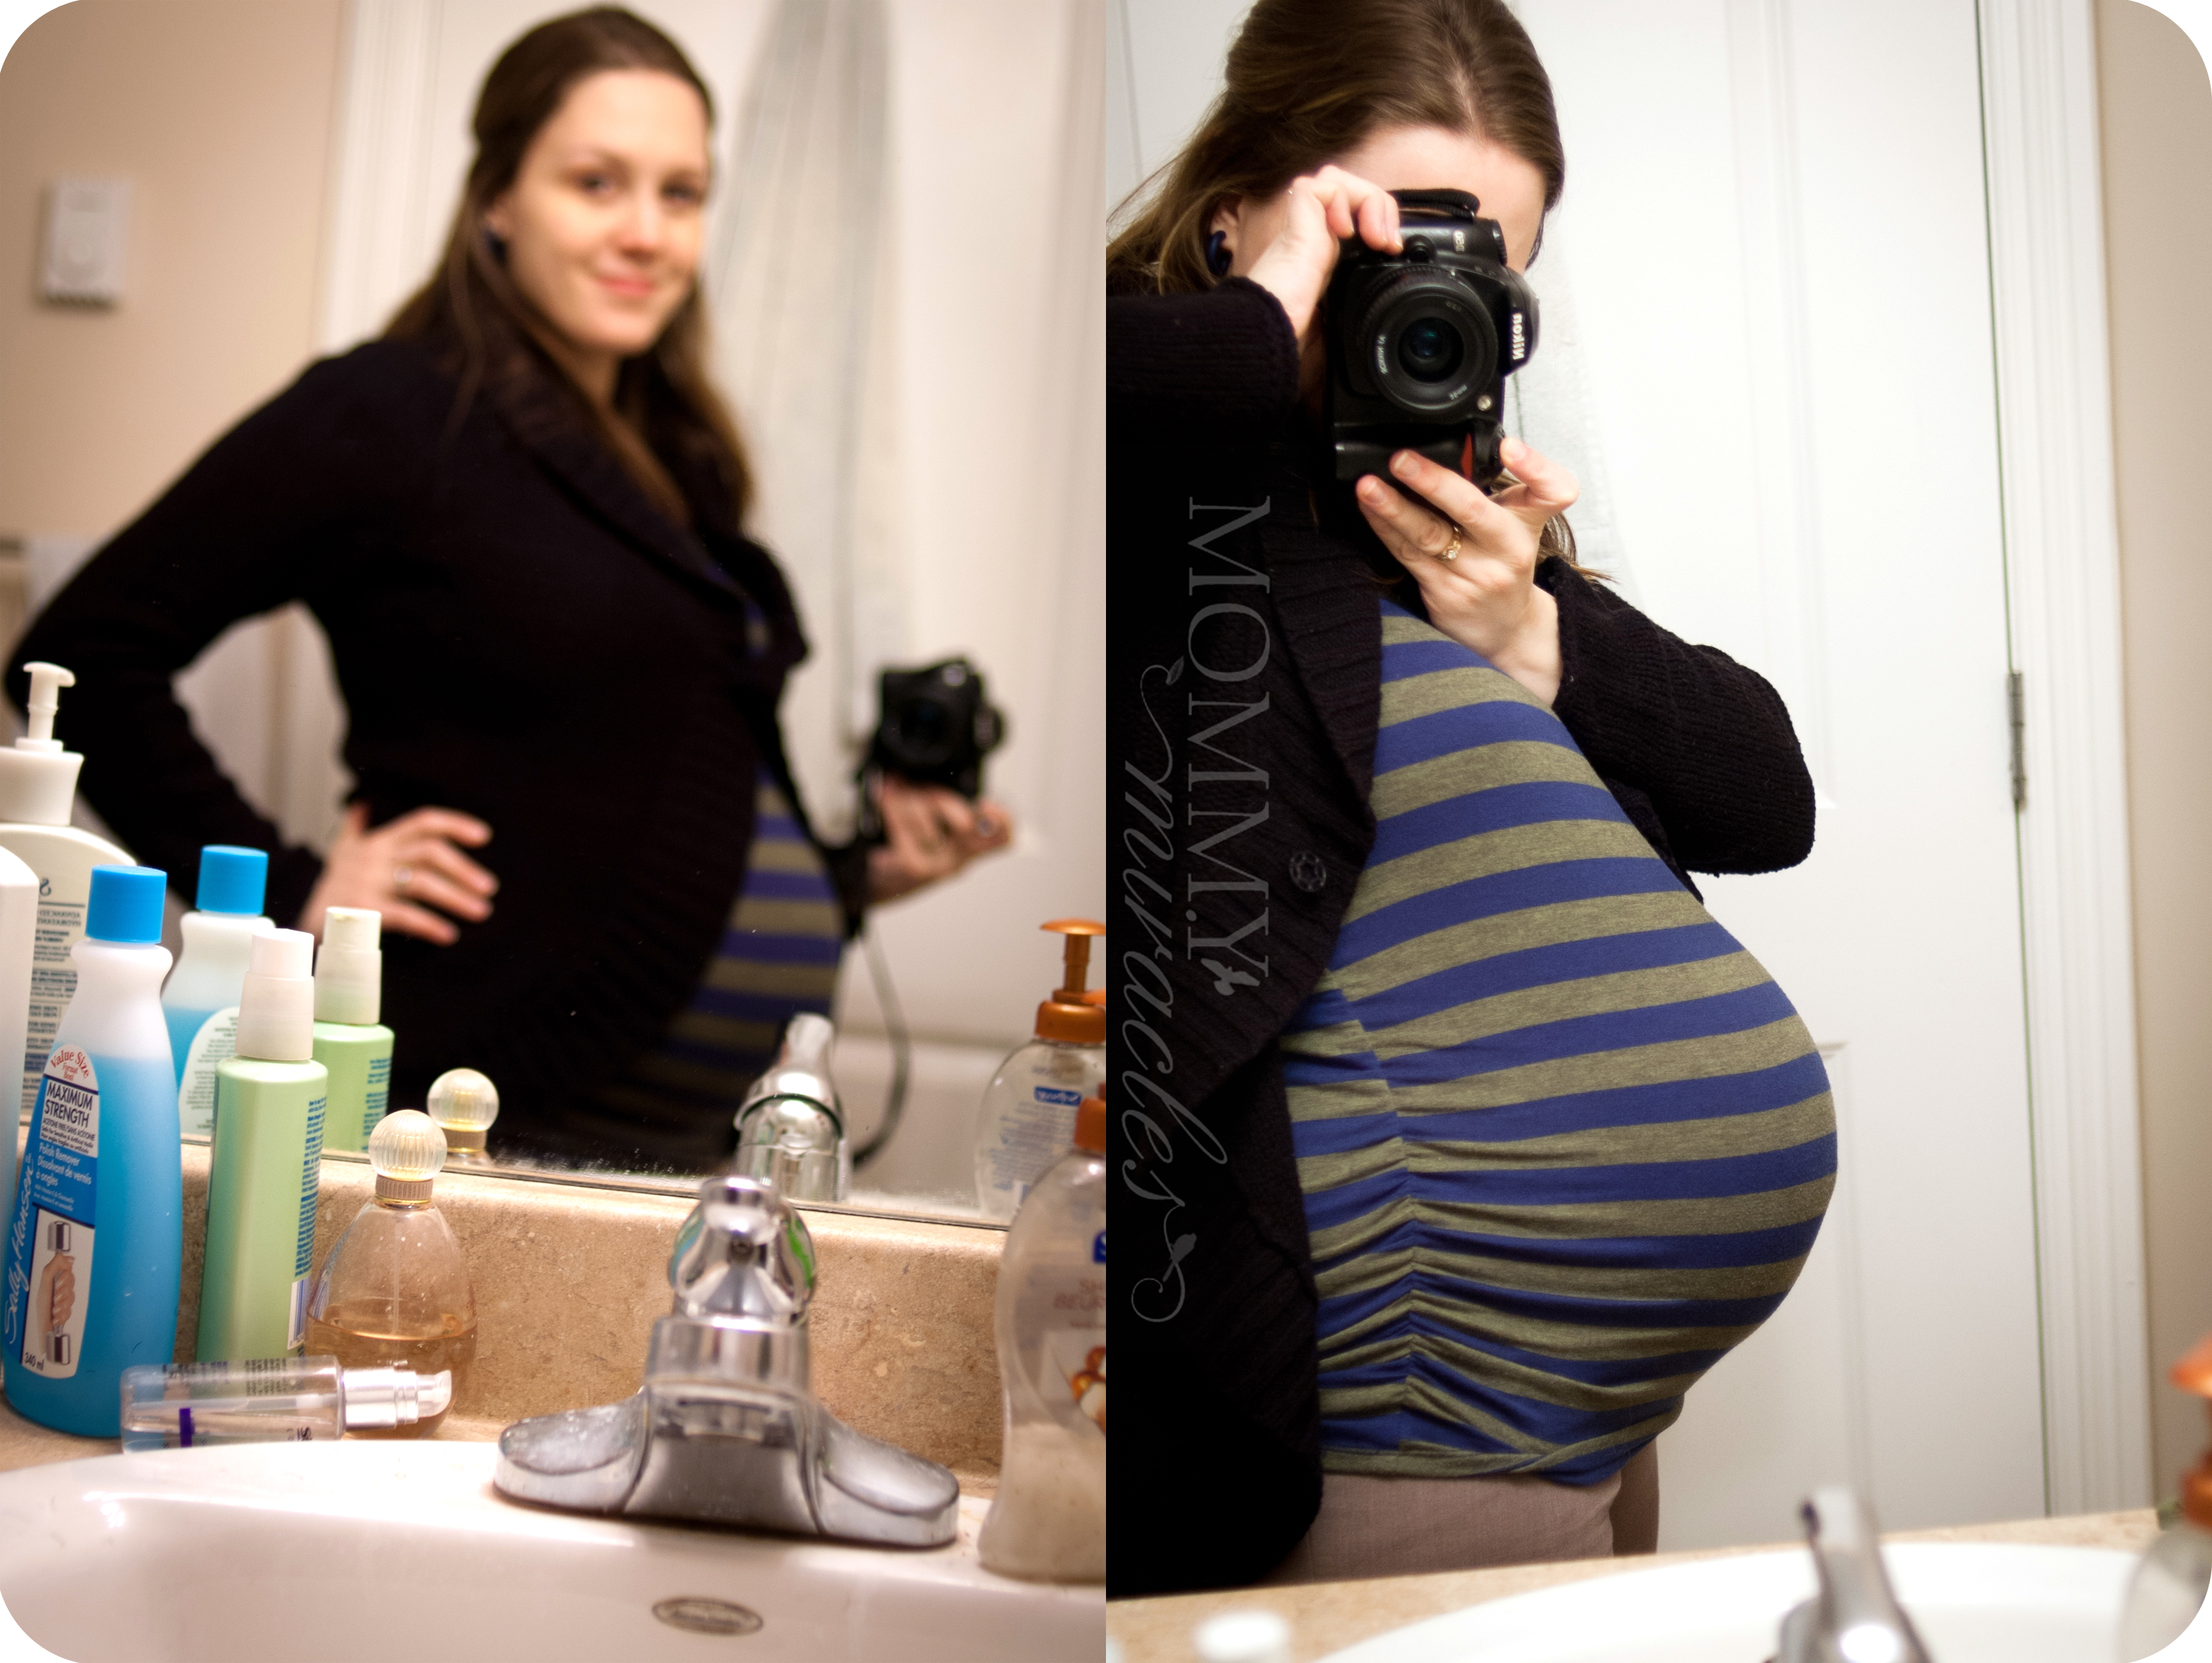 mommy-miracles.com_wp-content_uploads_2012_01_Belly-in-mirror